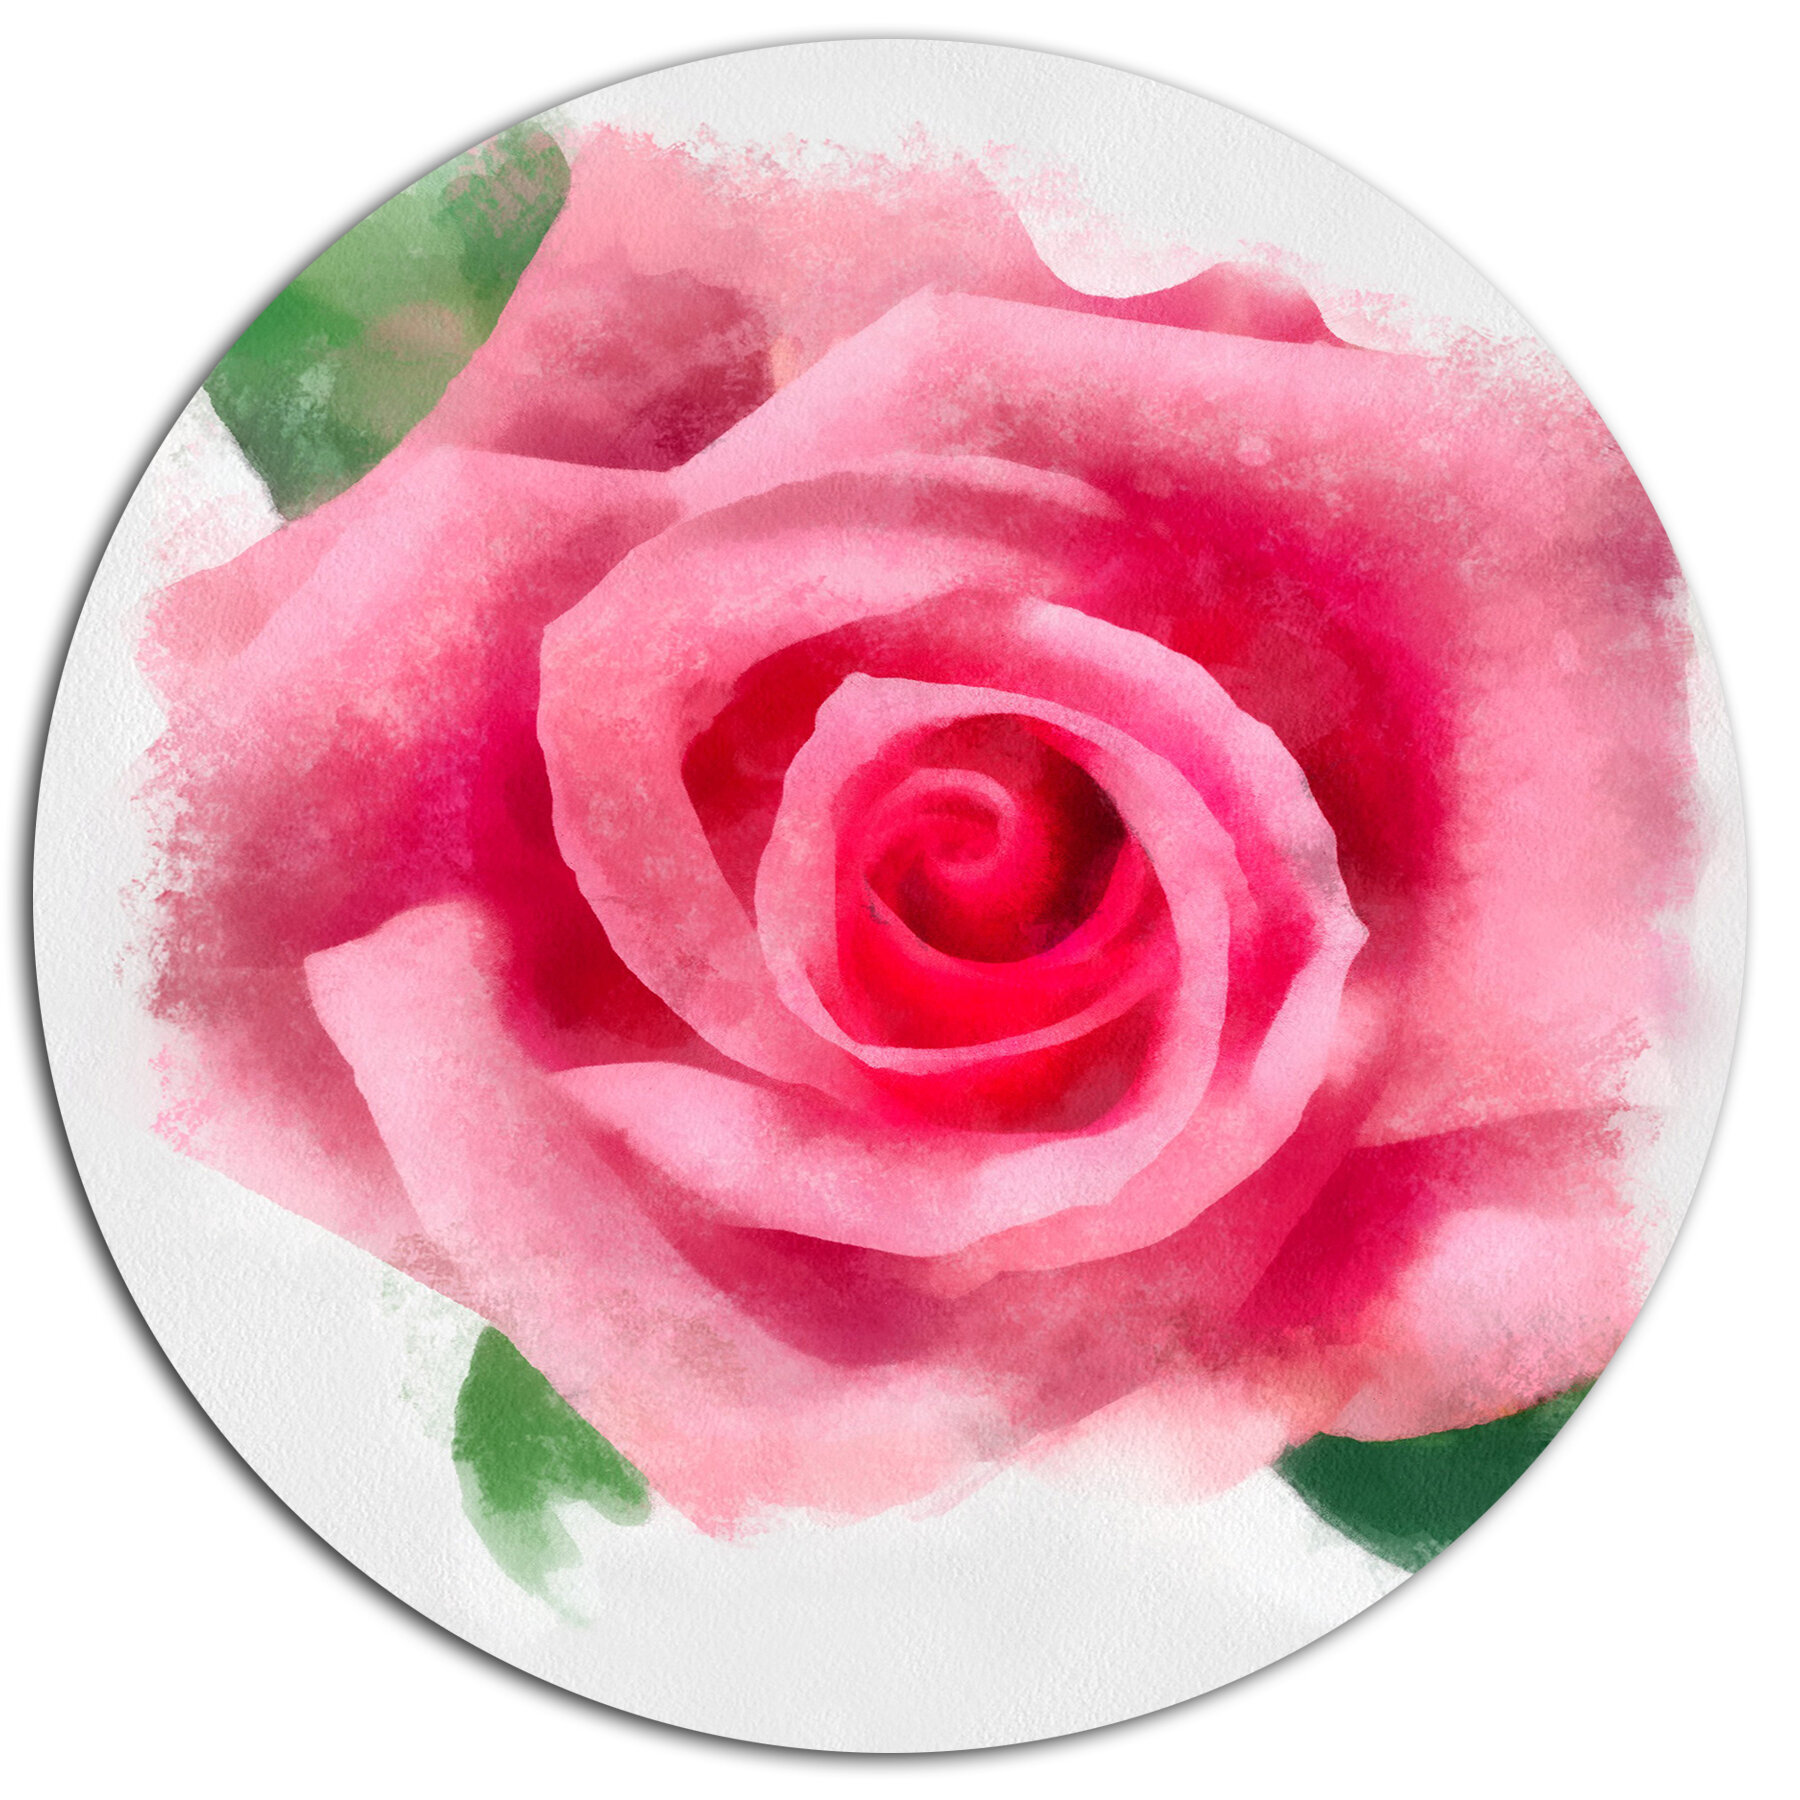 Designart Big Pink Rose Flower With Leaves Oil Painting Print On